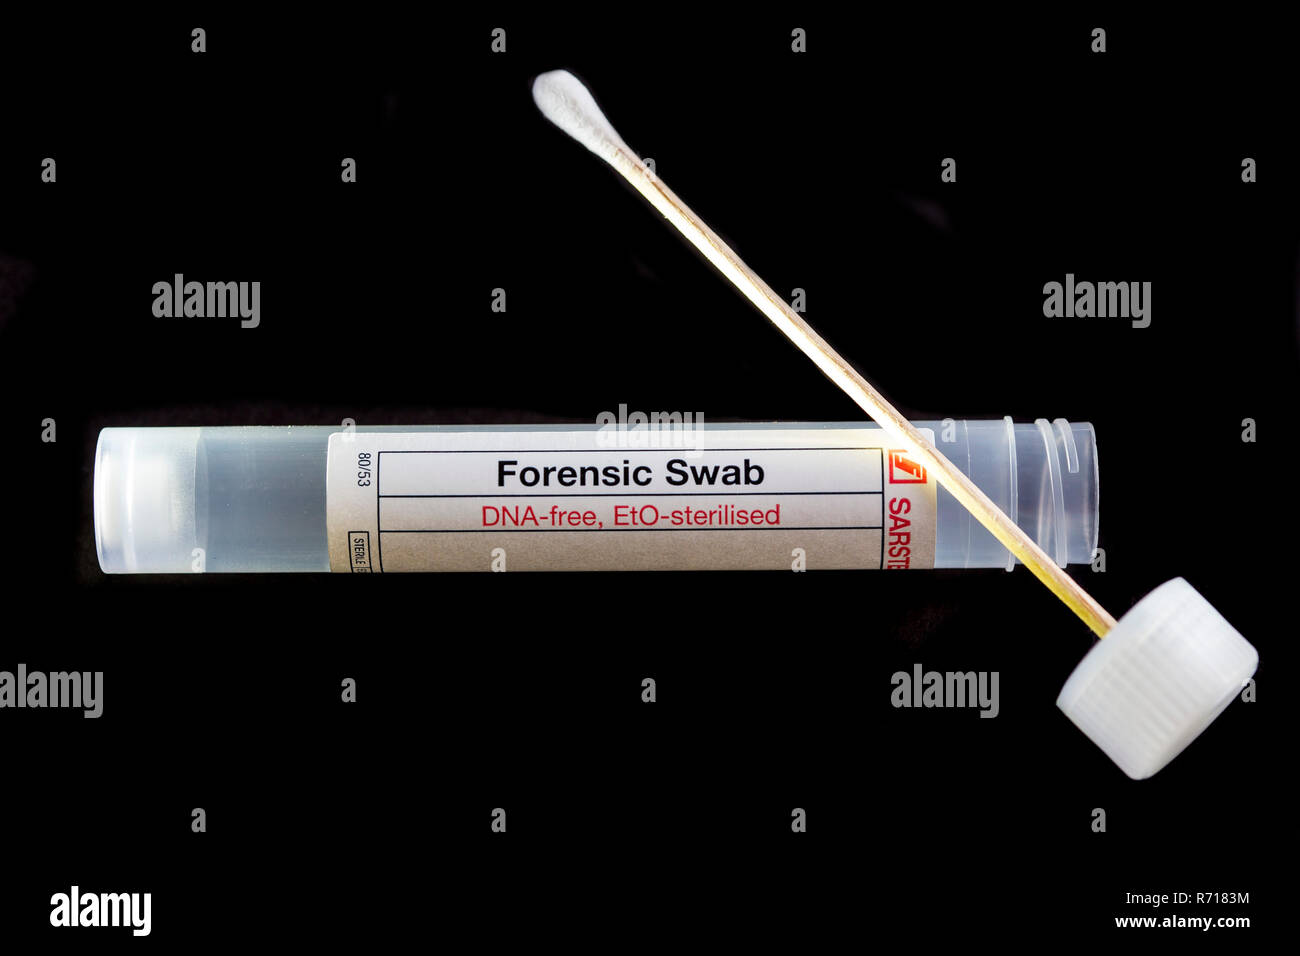 Forensic cotton swab for securing DNA, sterile, DNA trace analysis - Stock Image